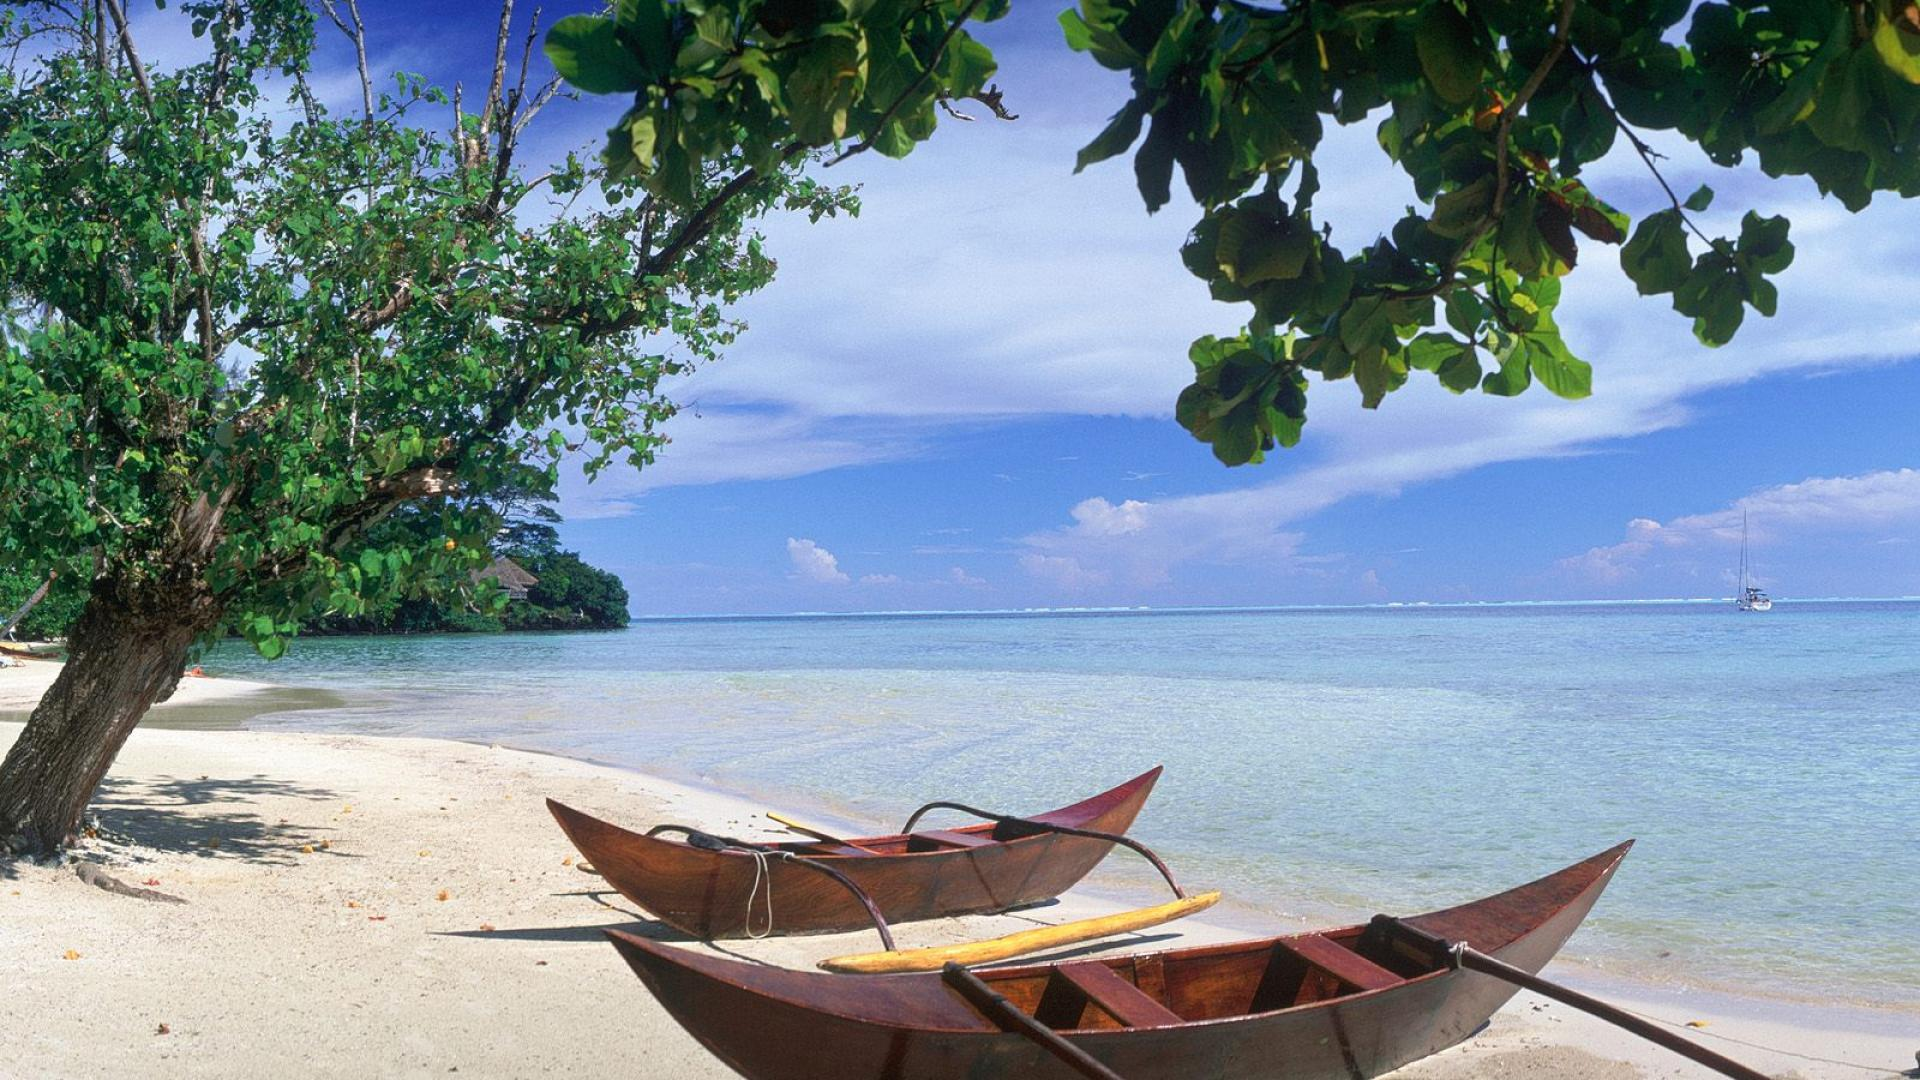 beach-wallpapers-hd-1080p-pictures-5 – lagawan